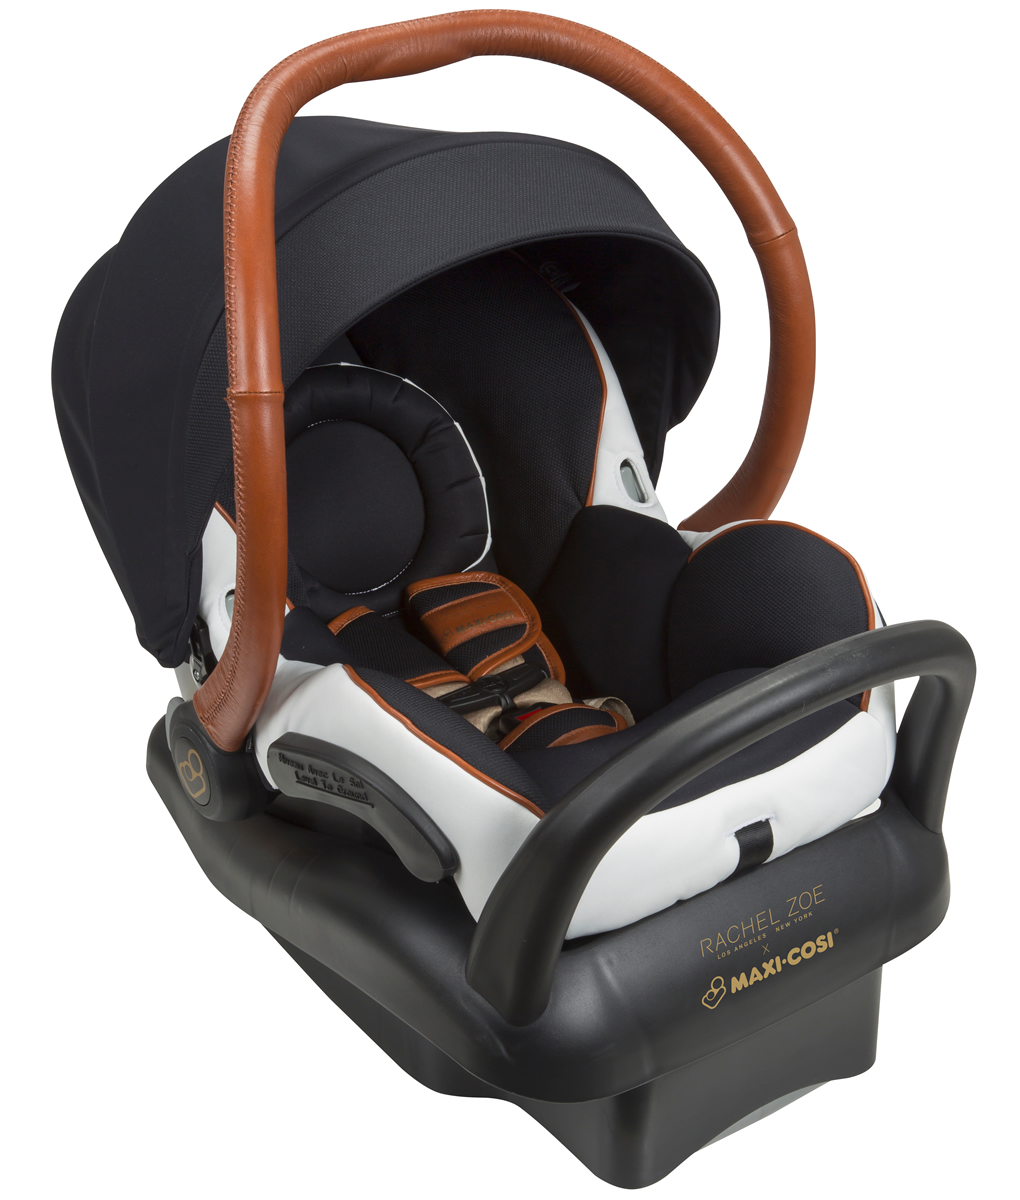 MAXI-COSI Mico Max 30 Infant Car Seat - Jet Set by Rachel...